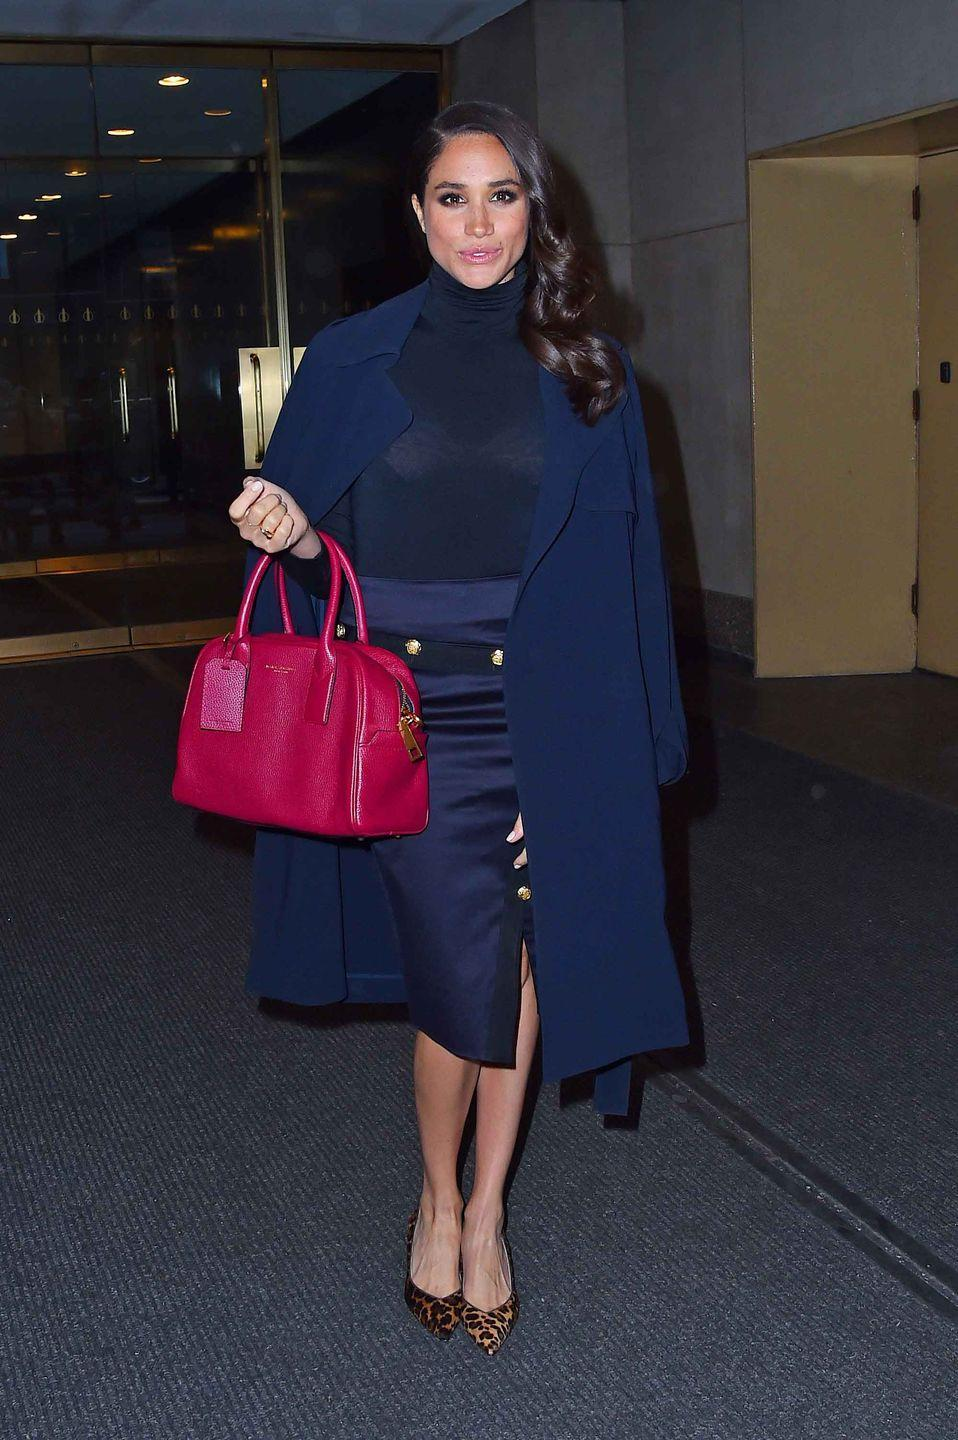 """<p>Markle wears a navy ensemble paired with a cranberry red purse and <a href=""""https://go.redirectingat.com?id=74968X1596630&url=https%3A%2F%2Fwww.sarahflint.com%2Fproducts%2Femma-chocolate-leopard%3Fvariant%3D37841859521&sref=https%3A%2F%2Fwww.townandcountrymag.com%2Fstyle%2Ffashion-trends%2Fg3272%2Fmeghan-markle-preppy-style%2F"""" rel=""""nofollow noopener"""" target=""""_blank"""" data-ylk=""""slk:leopard print pumps from Sarah Flint"""" class=""""link rapid-noclick-resp"""">leopard print pumps from Sarah Flint</a>.</p><p><a class=""""link rapid-noclick-resp"""" href=""""https://go.redirectingat.com?id=74968X1596630&url=https%3A%2F%2Fwww.sarahflint.com%2Fproducts%2Femma-chocolate-leopard%3Fvariant%3D37841859521&sref=https%3A%2F%2Fwww.townandcountrymag.com%2Fstyle%2Ffashion-trends%2Fg3272%2Fmeghan-markle-preppy-style%2F"""" rel=""""nofollow noopener"""" target=""""_blank"""" data-ylk=""""slk:SHOP NOW"""">SHOP NOW</a> <em>Emma Block Heel Pump by Sarah Flint, $375</em><br></p>"""